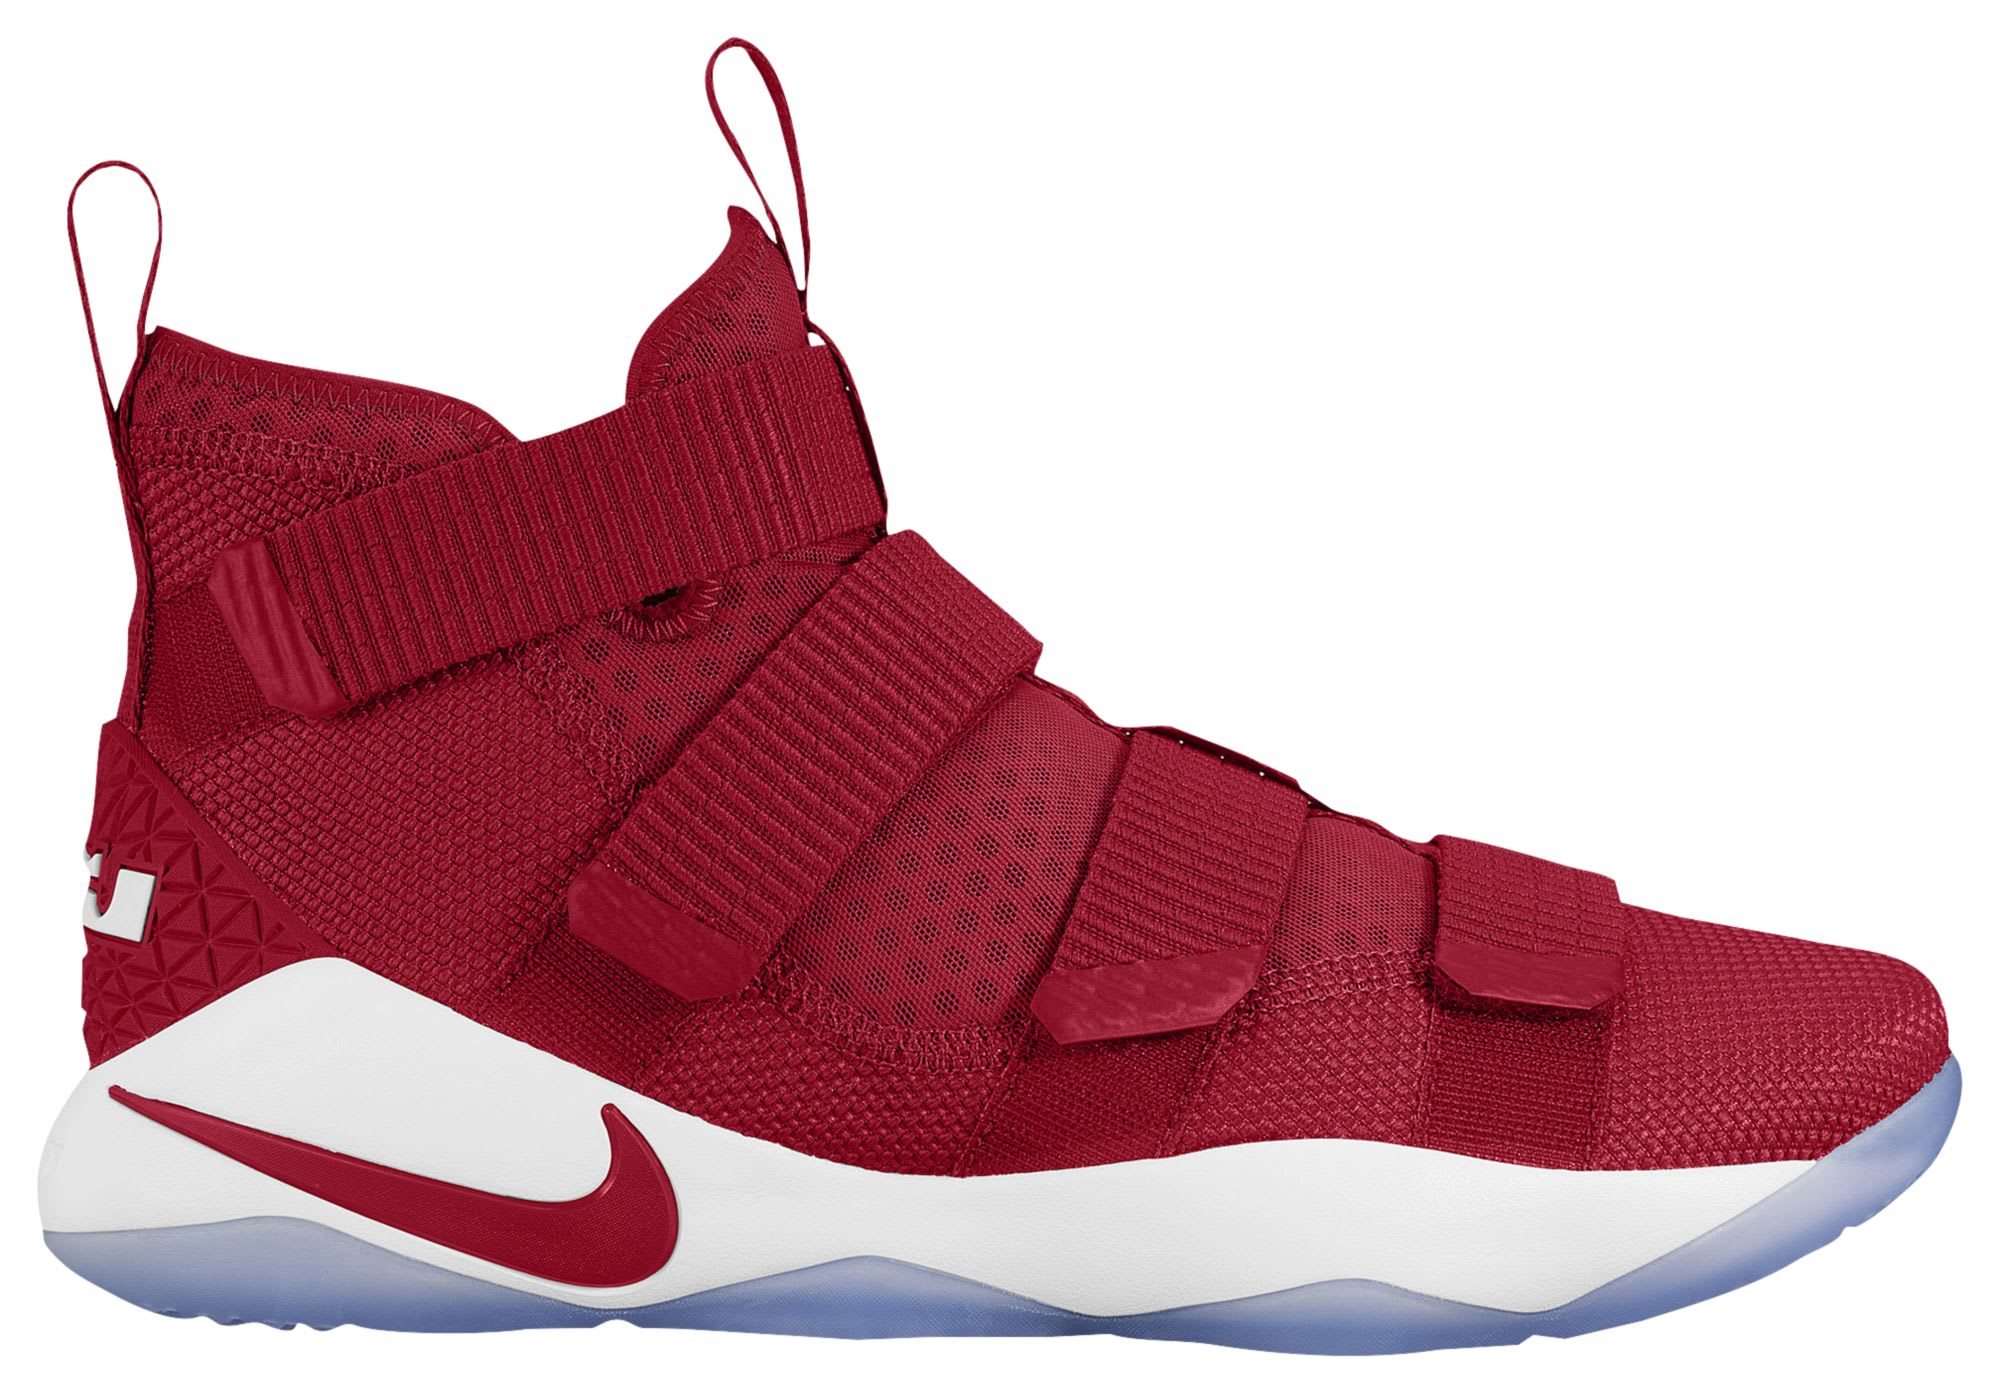 Nike LeBron Soldier 11 TB Gym Red